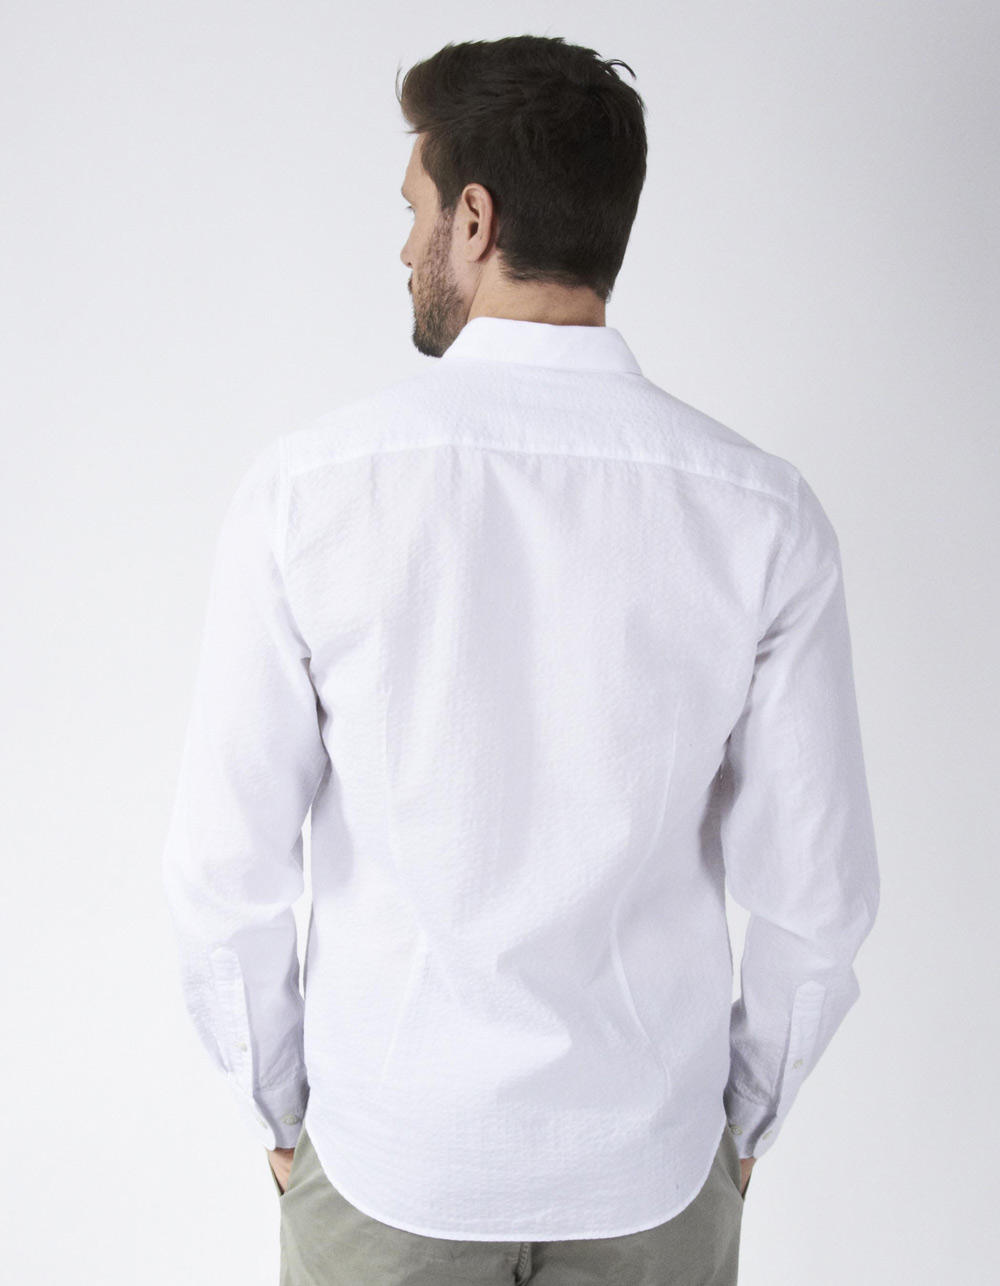 White gathered shirt - Backside